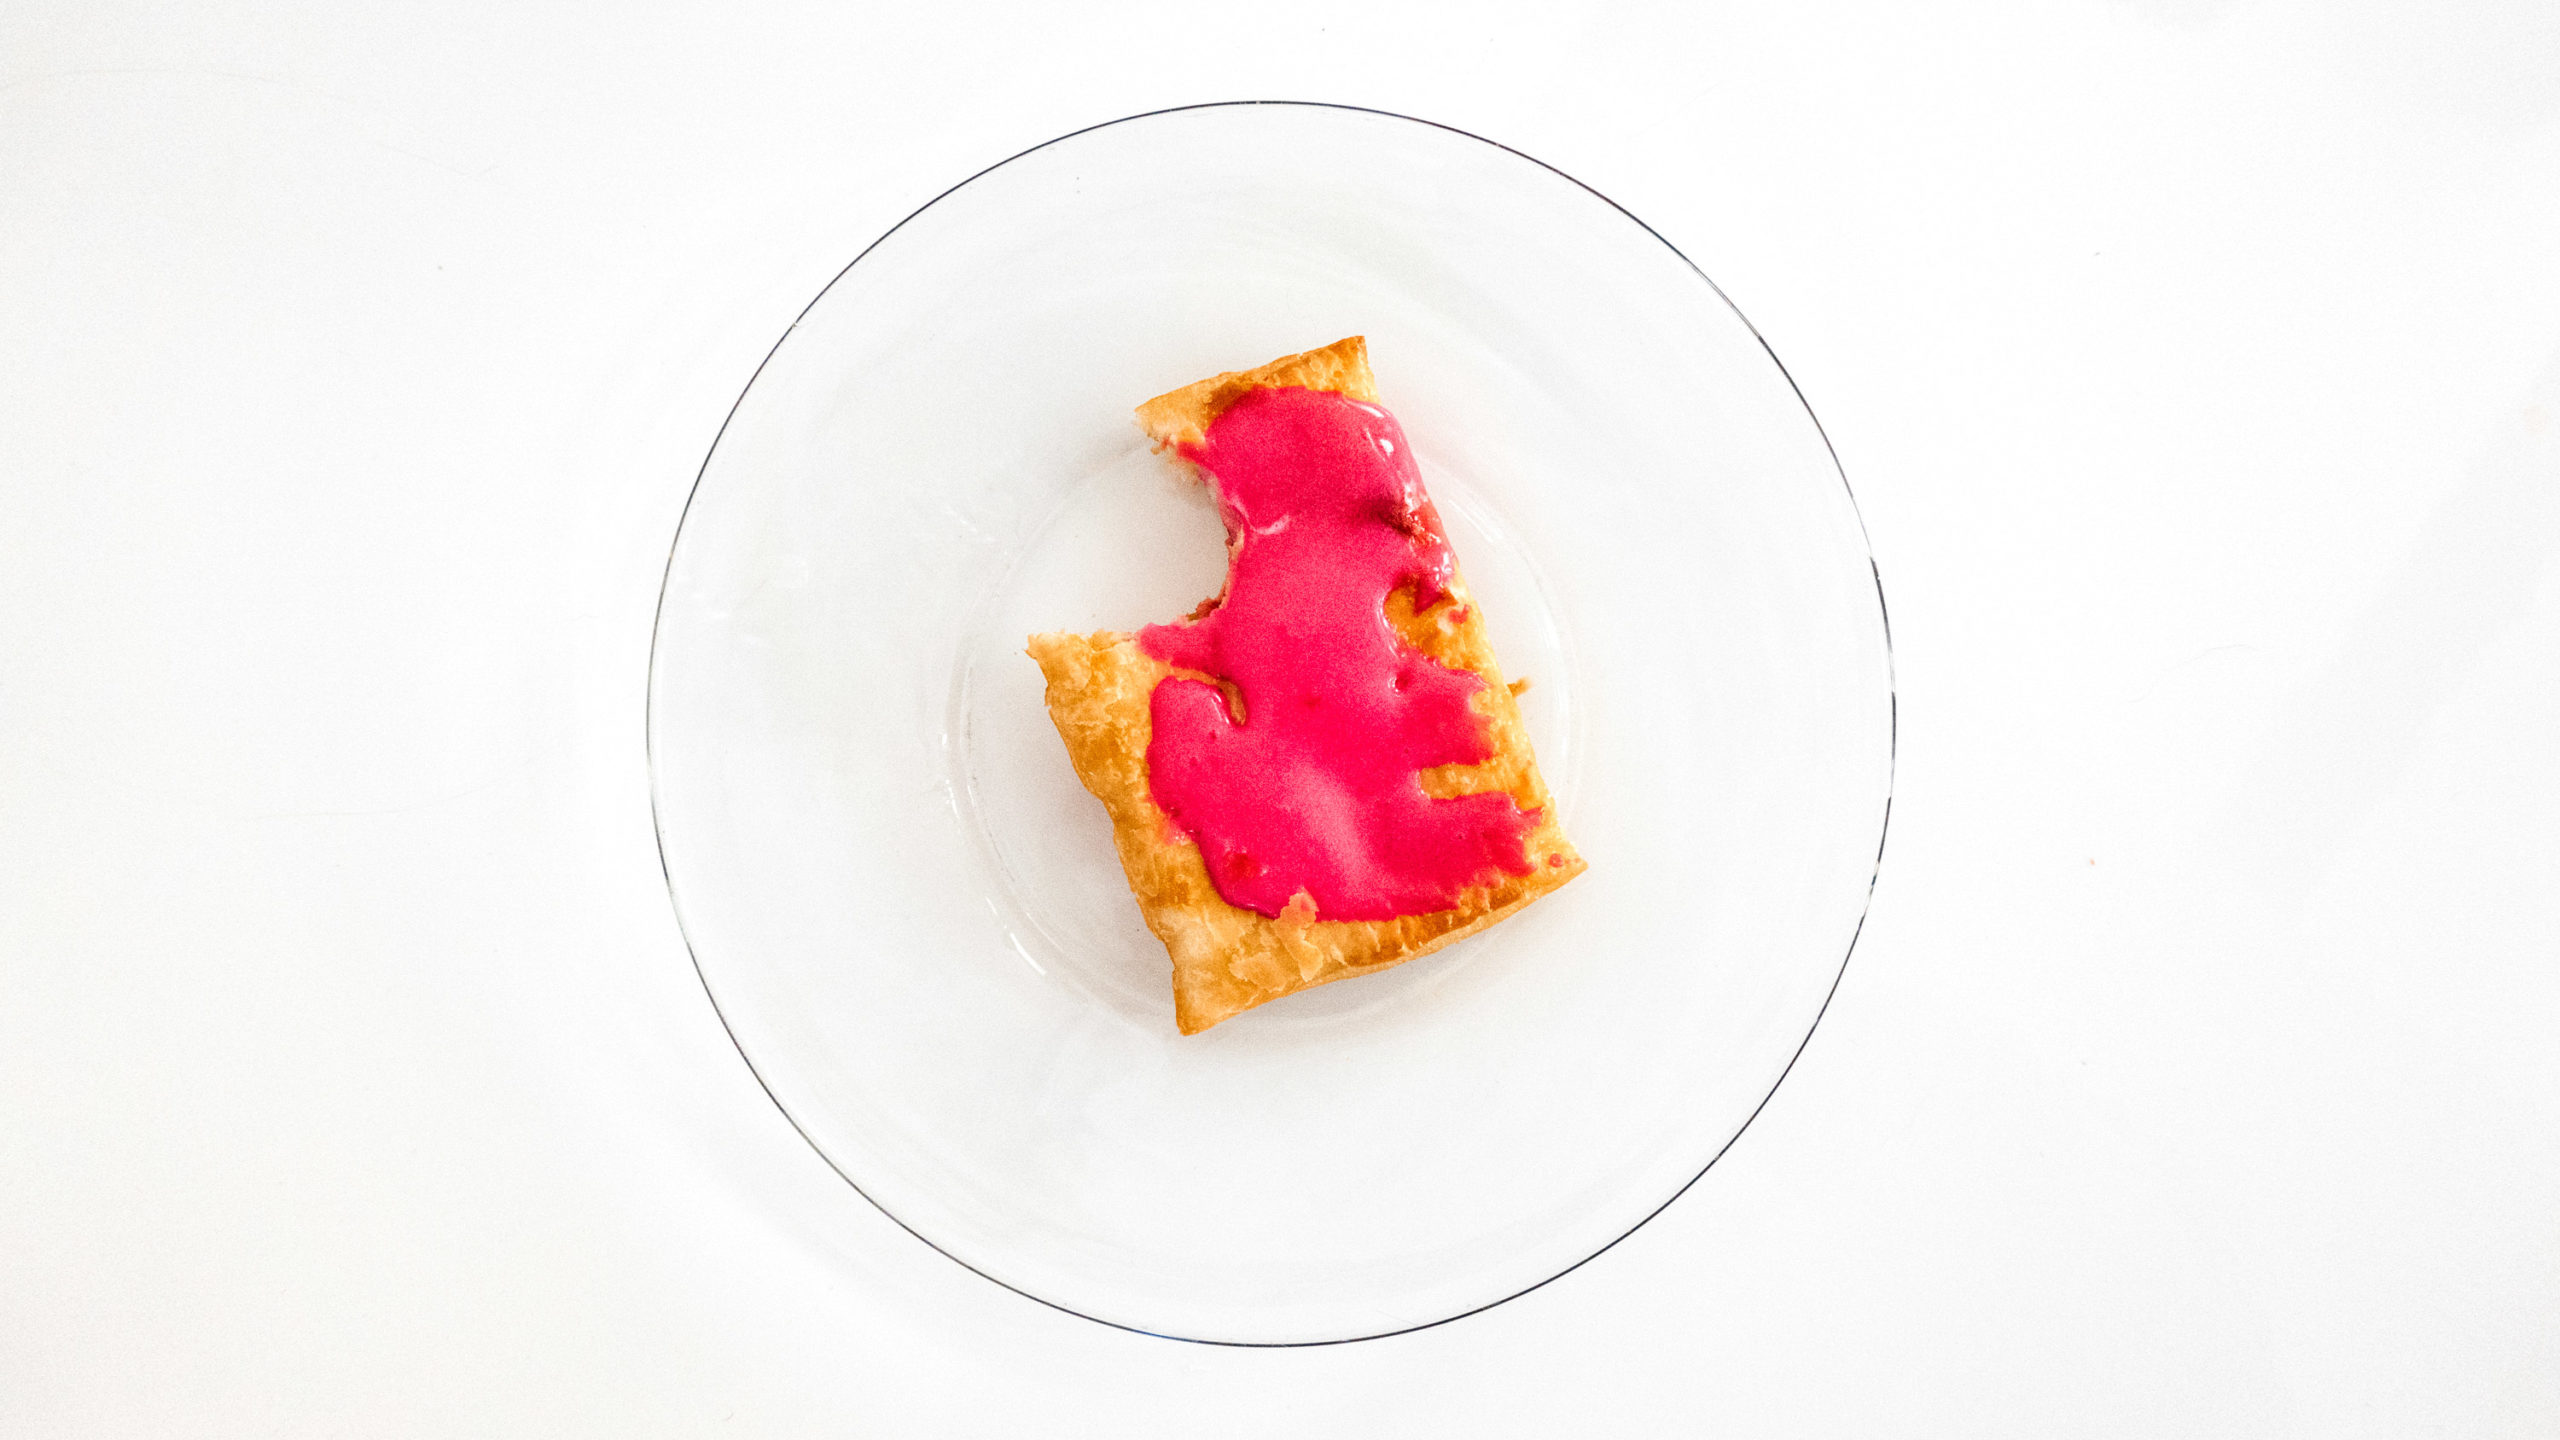 Pillsbury Toaster Strudel with pink icing